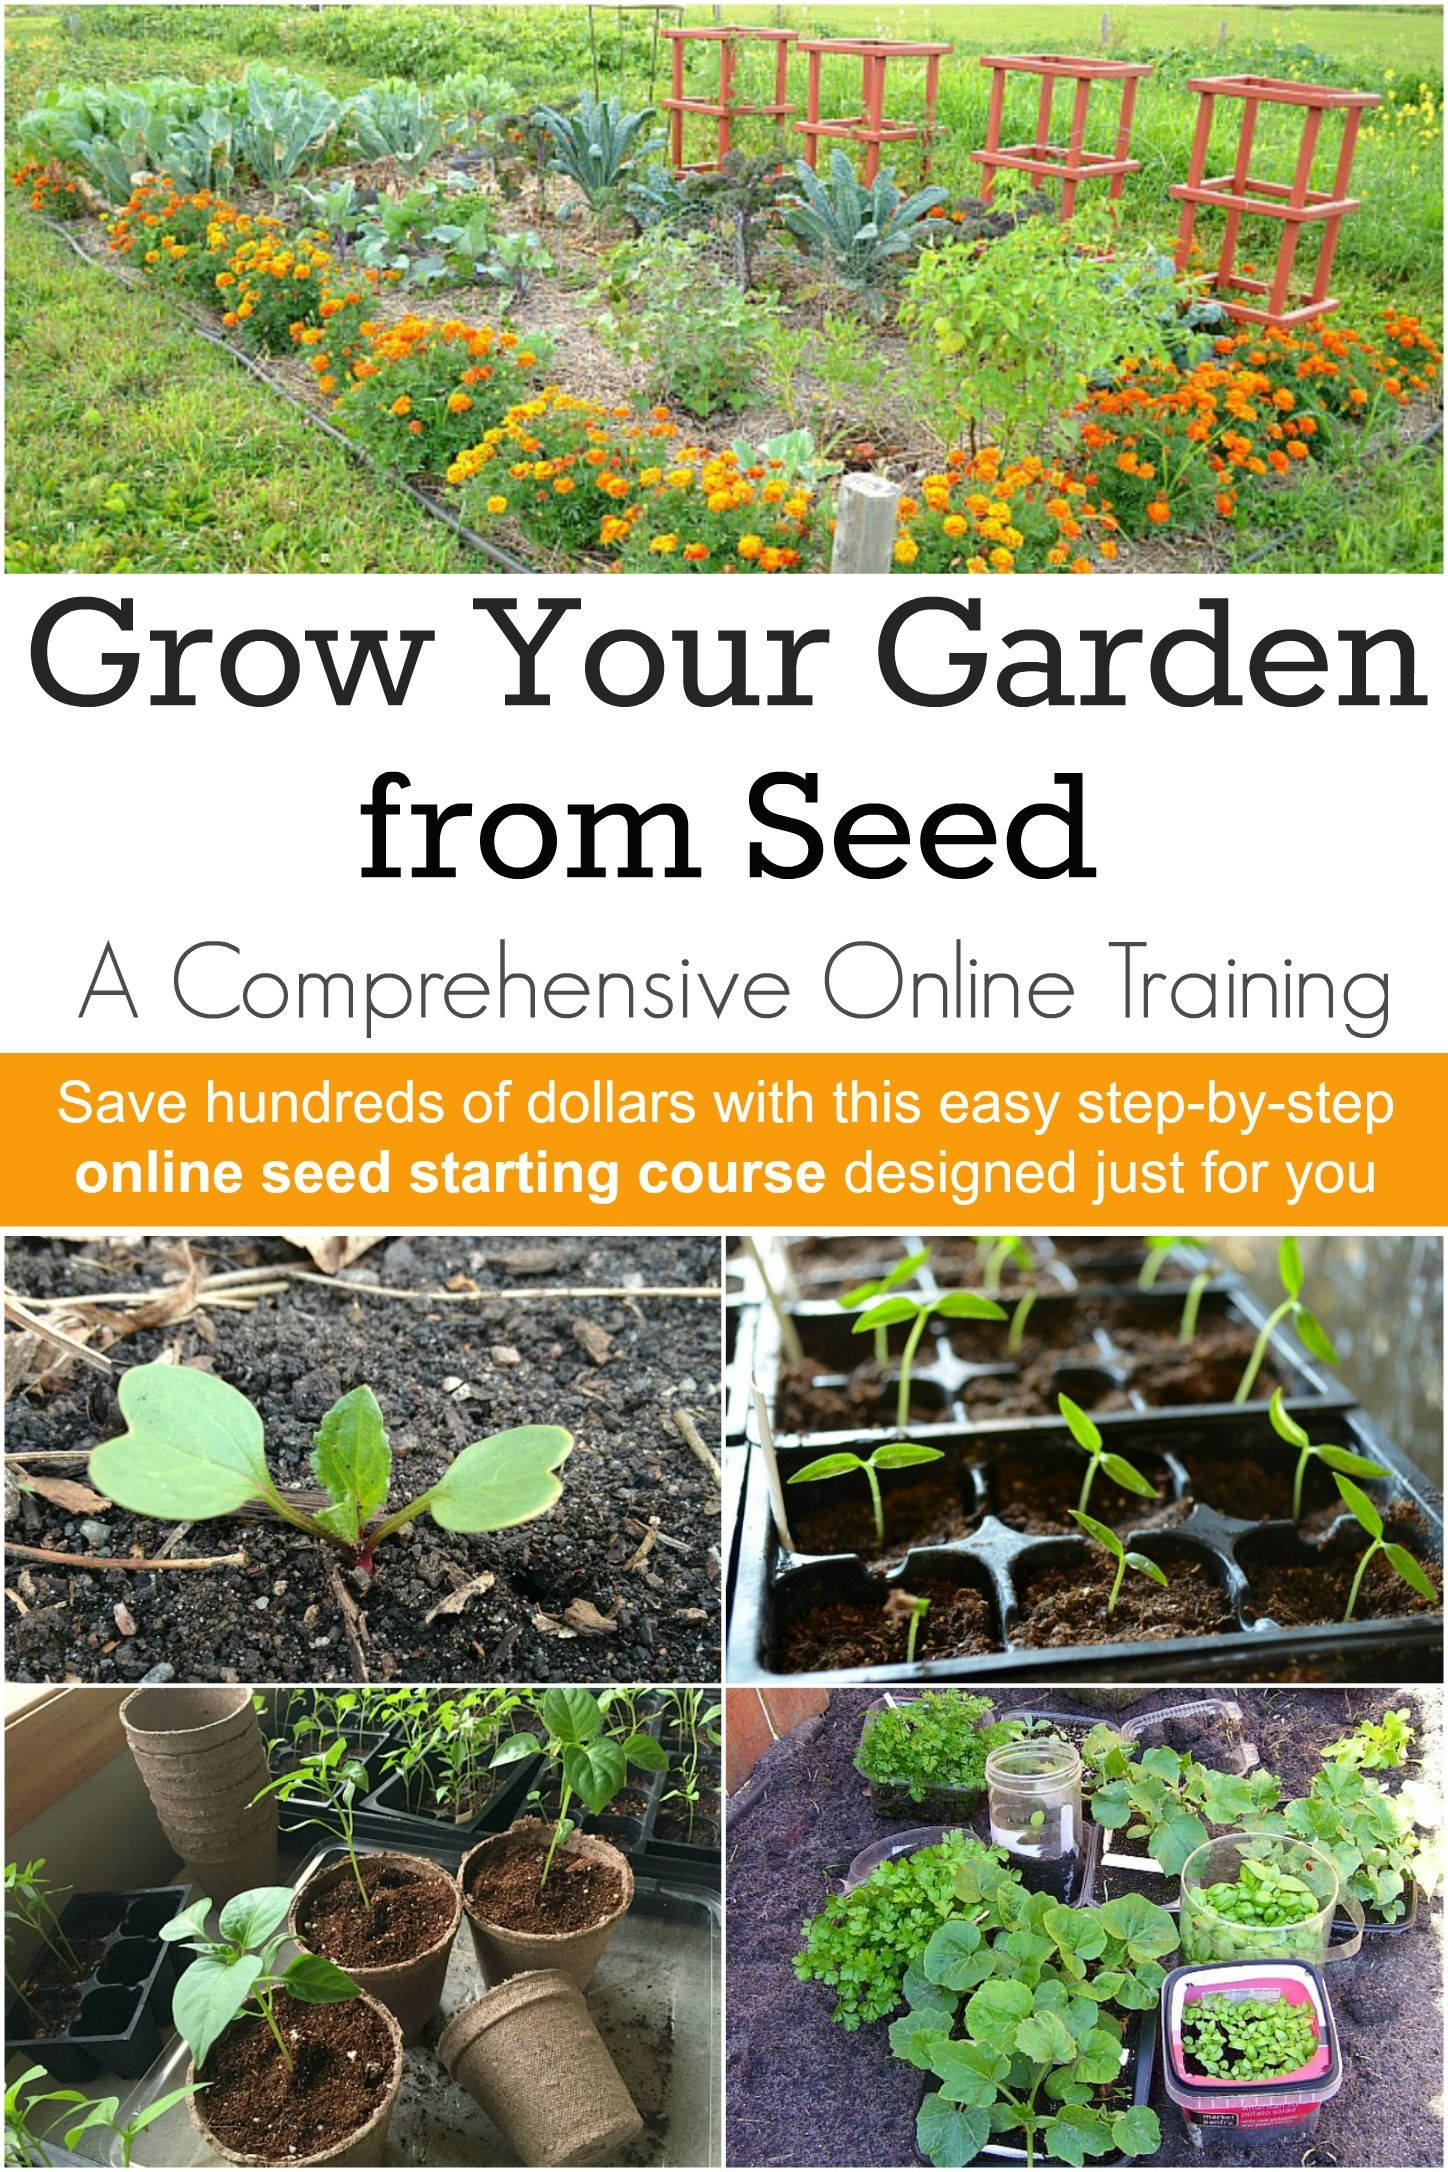 Online Seed Starting Course Learn How To Grow Seeds In This